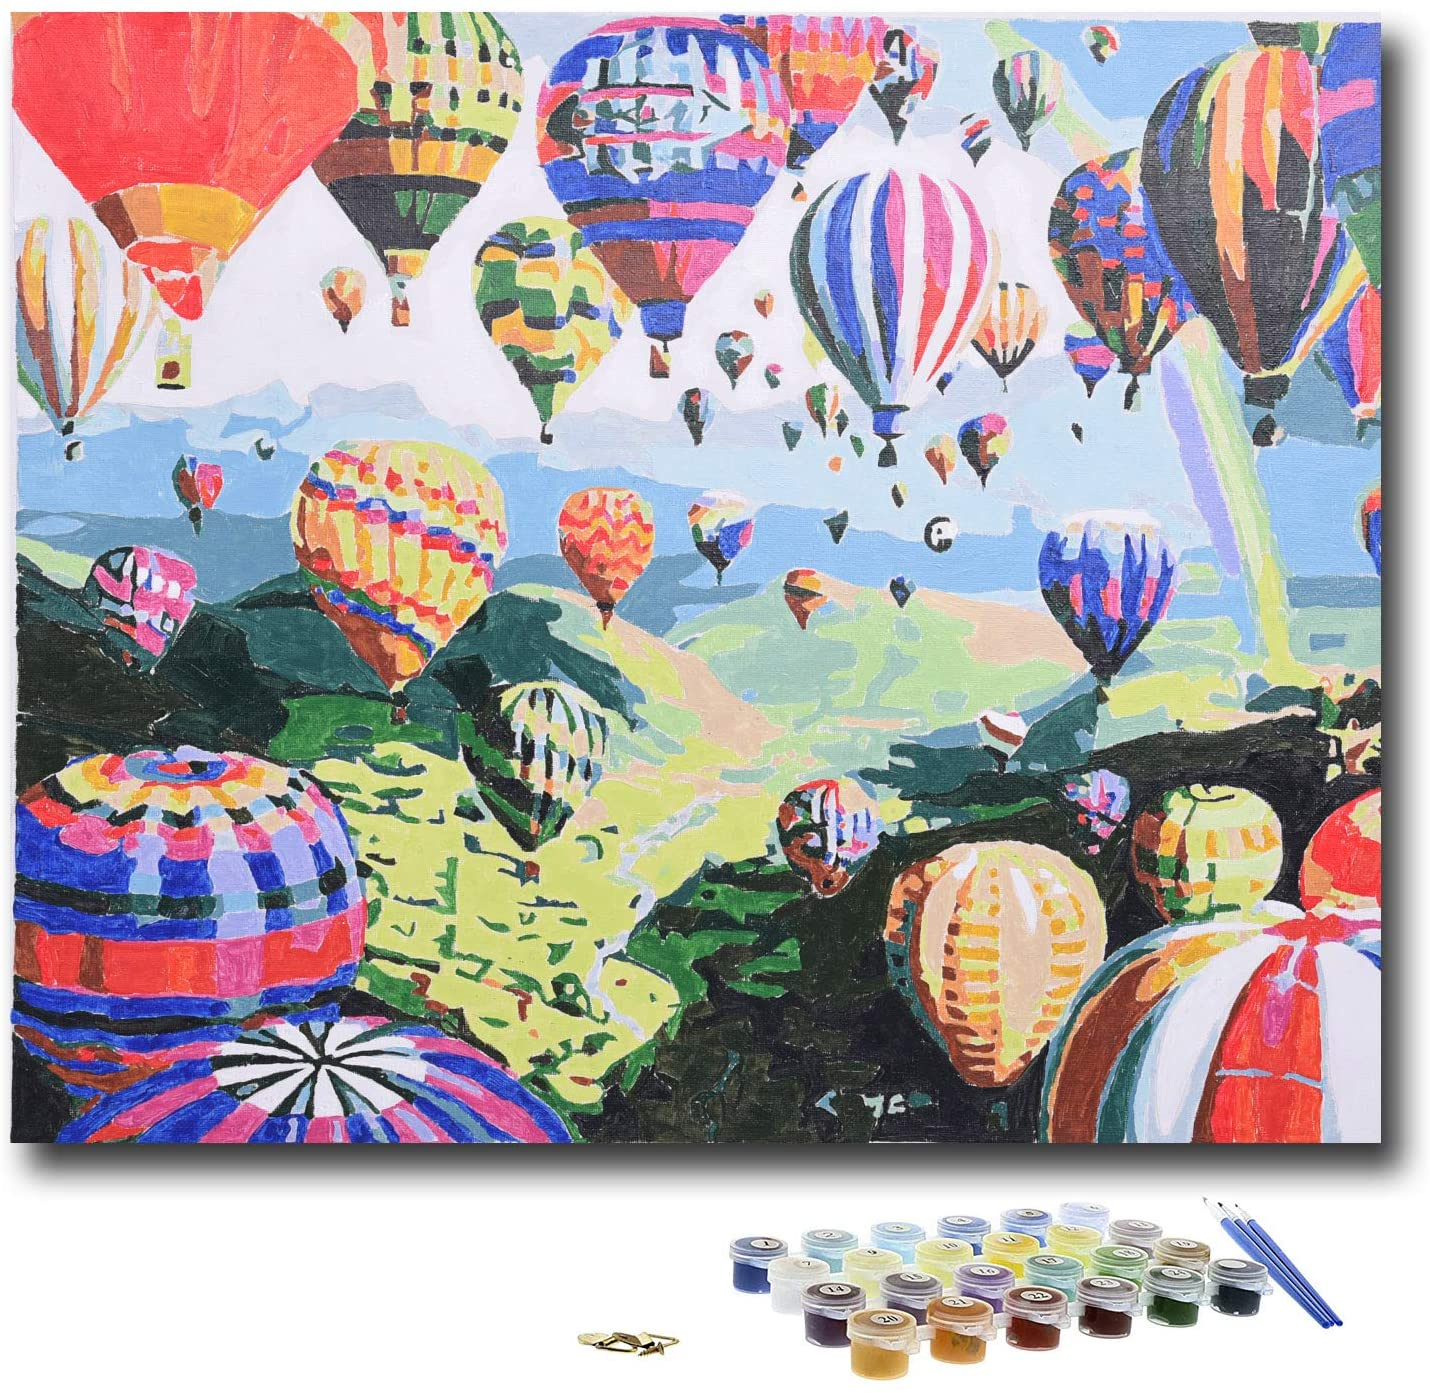 KLIERWOY Paint by Numbers for Adults - DIY Oil Paint Beginner Kit Art Canvas Set 16x20 inch (Without Frame) Hot Air Balloon